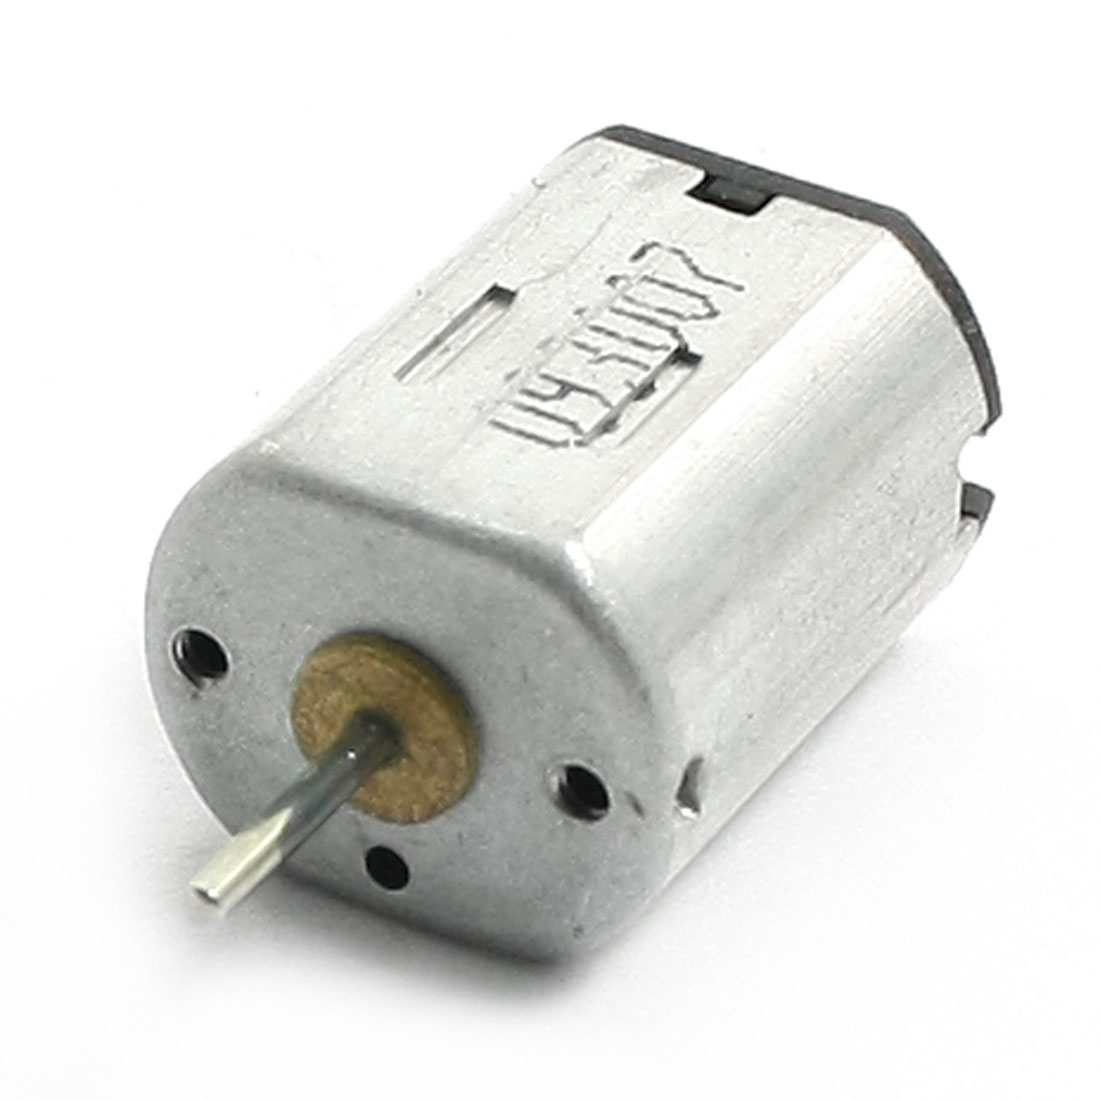 Replacement-12000RPM-Speed-Micro-Vibrating-Vibration-Motor-DC-3V